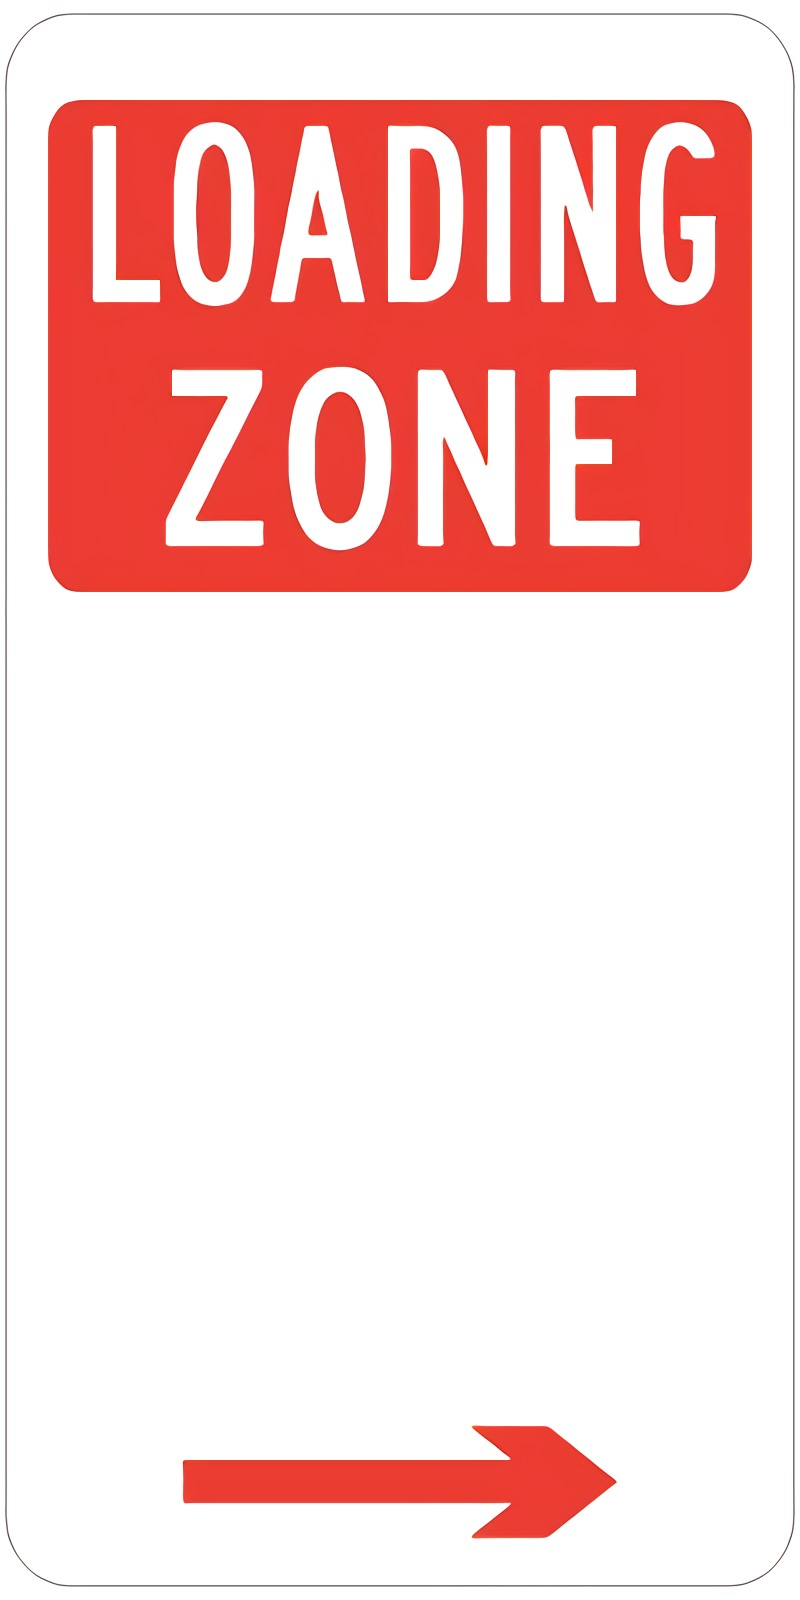 loading zone right arrow sign made out of aluminium